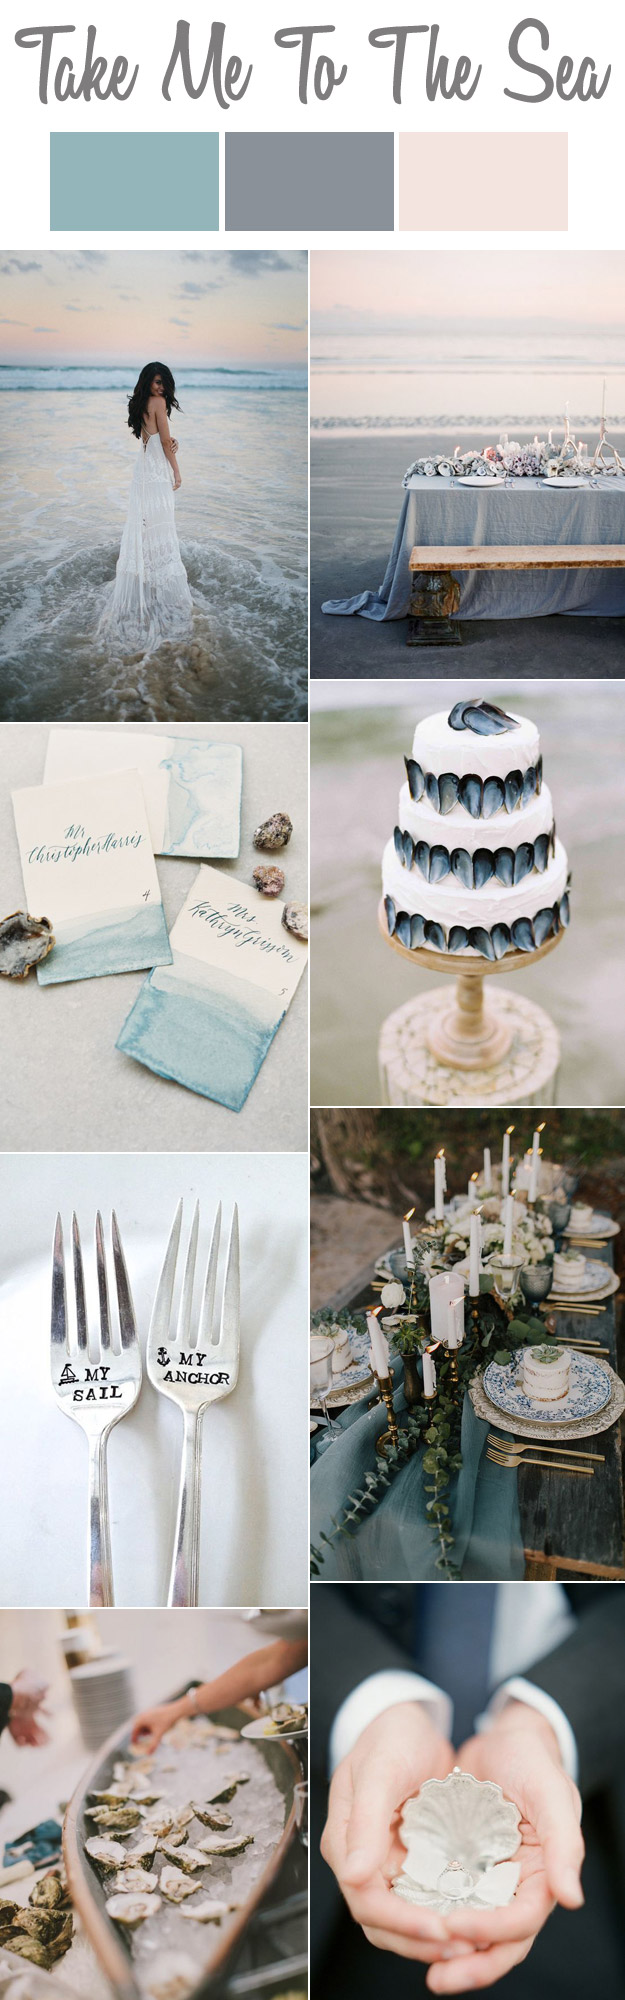 Me To The Sea: A Pastel Seaside Wedding Story |  Lucky in Love Blog